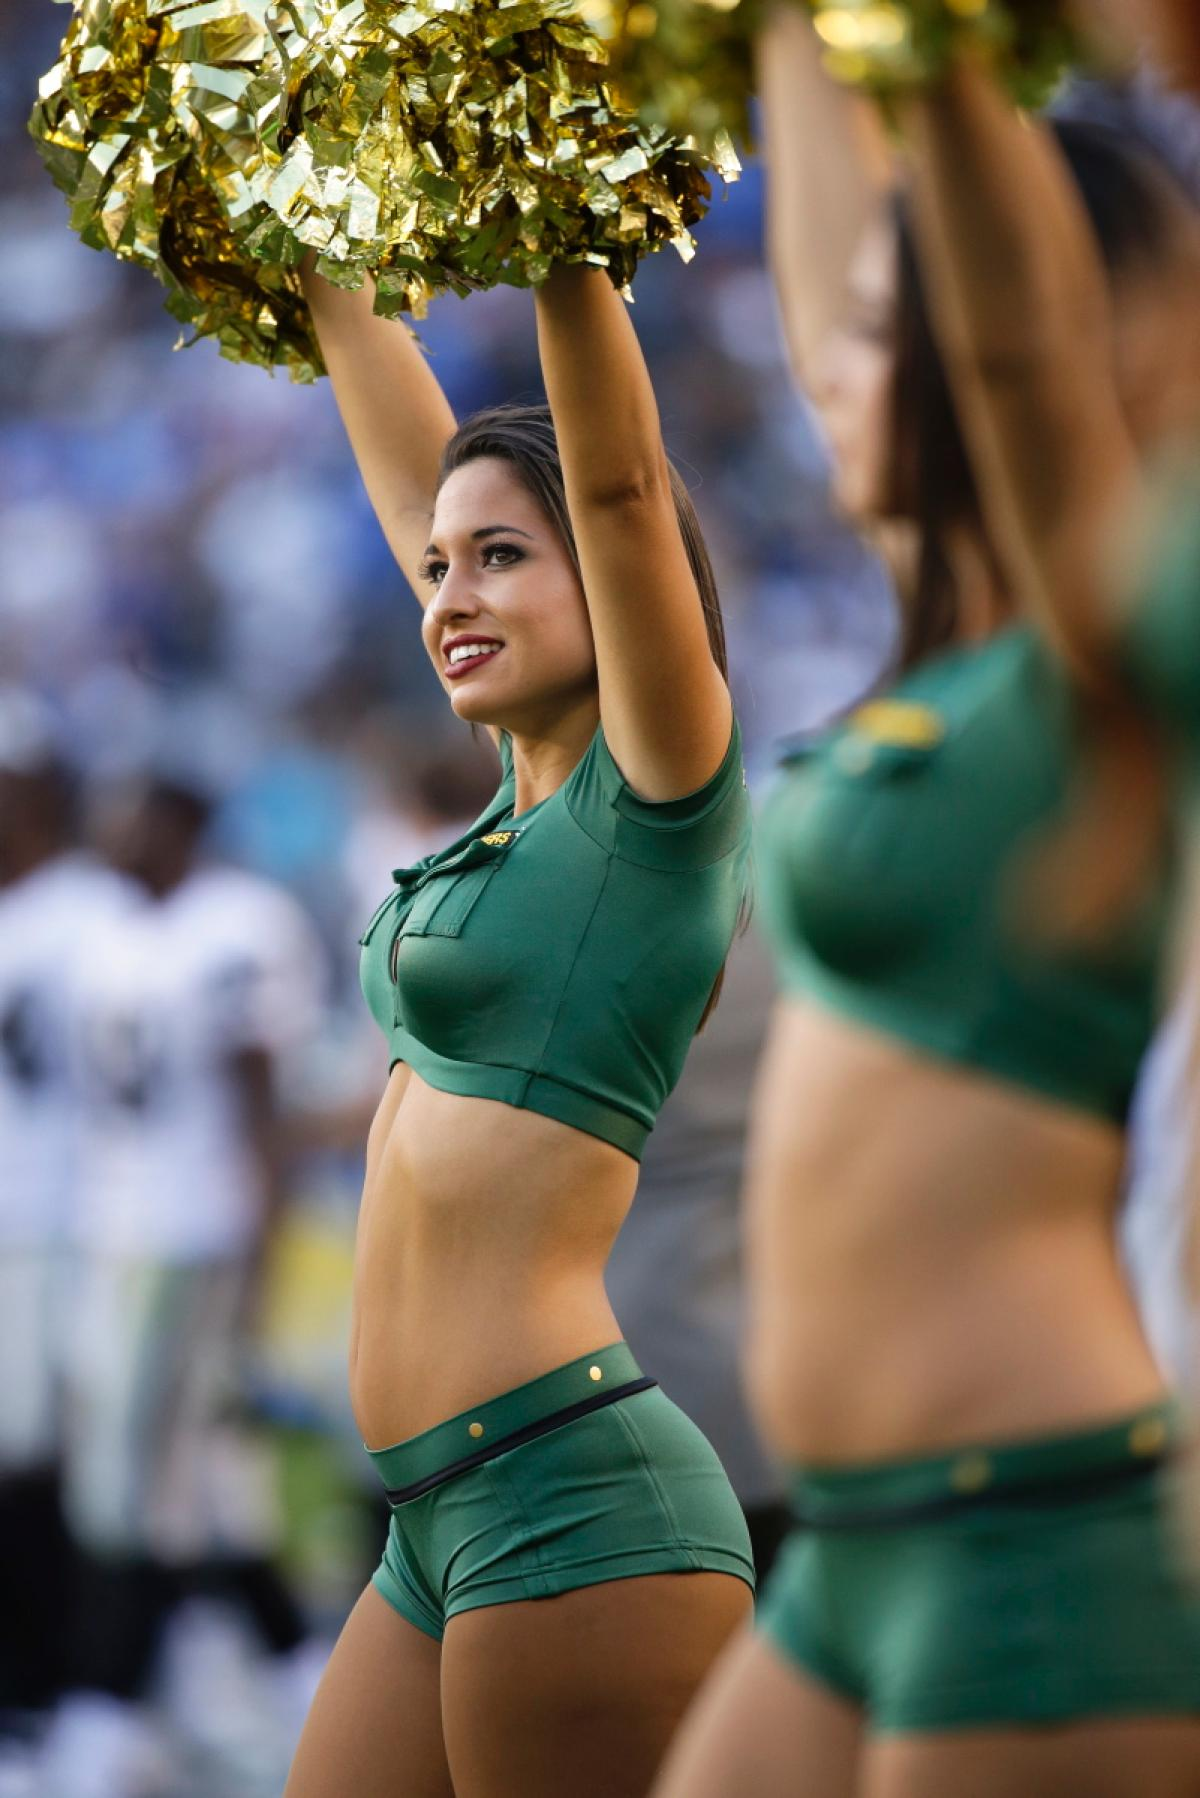 nfl-cheerleaders-flaunt-team-spirit-week-11.jpg